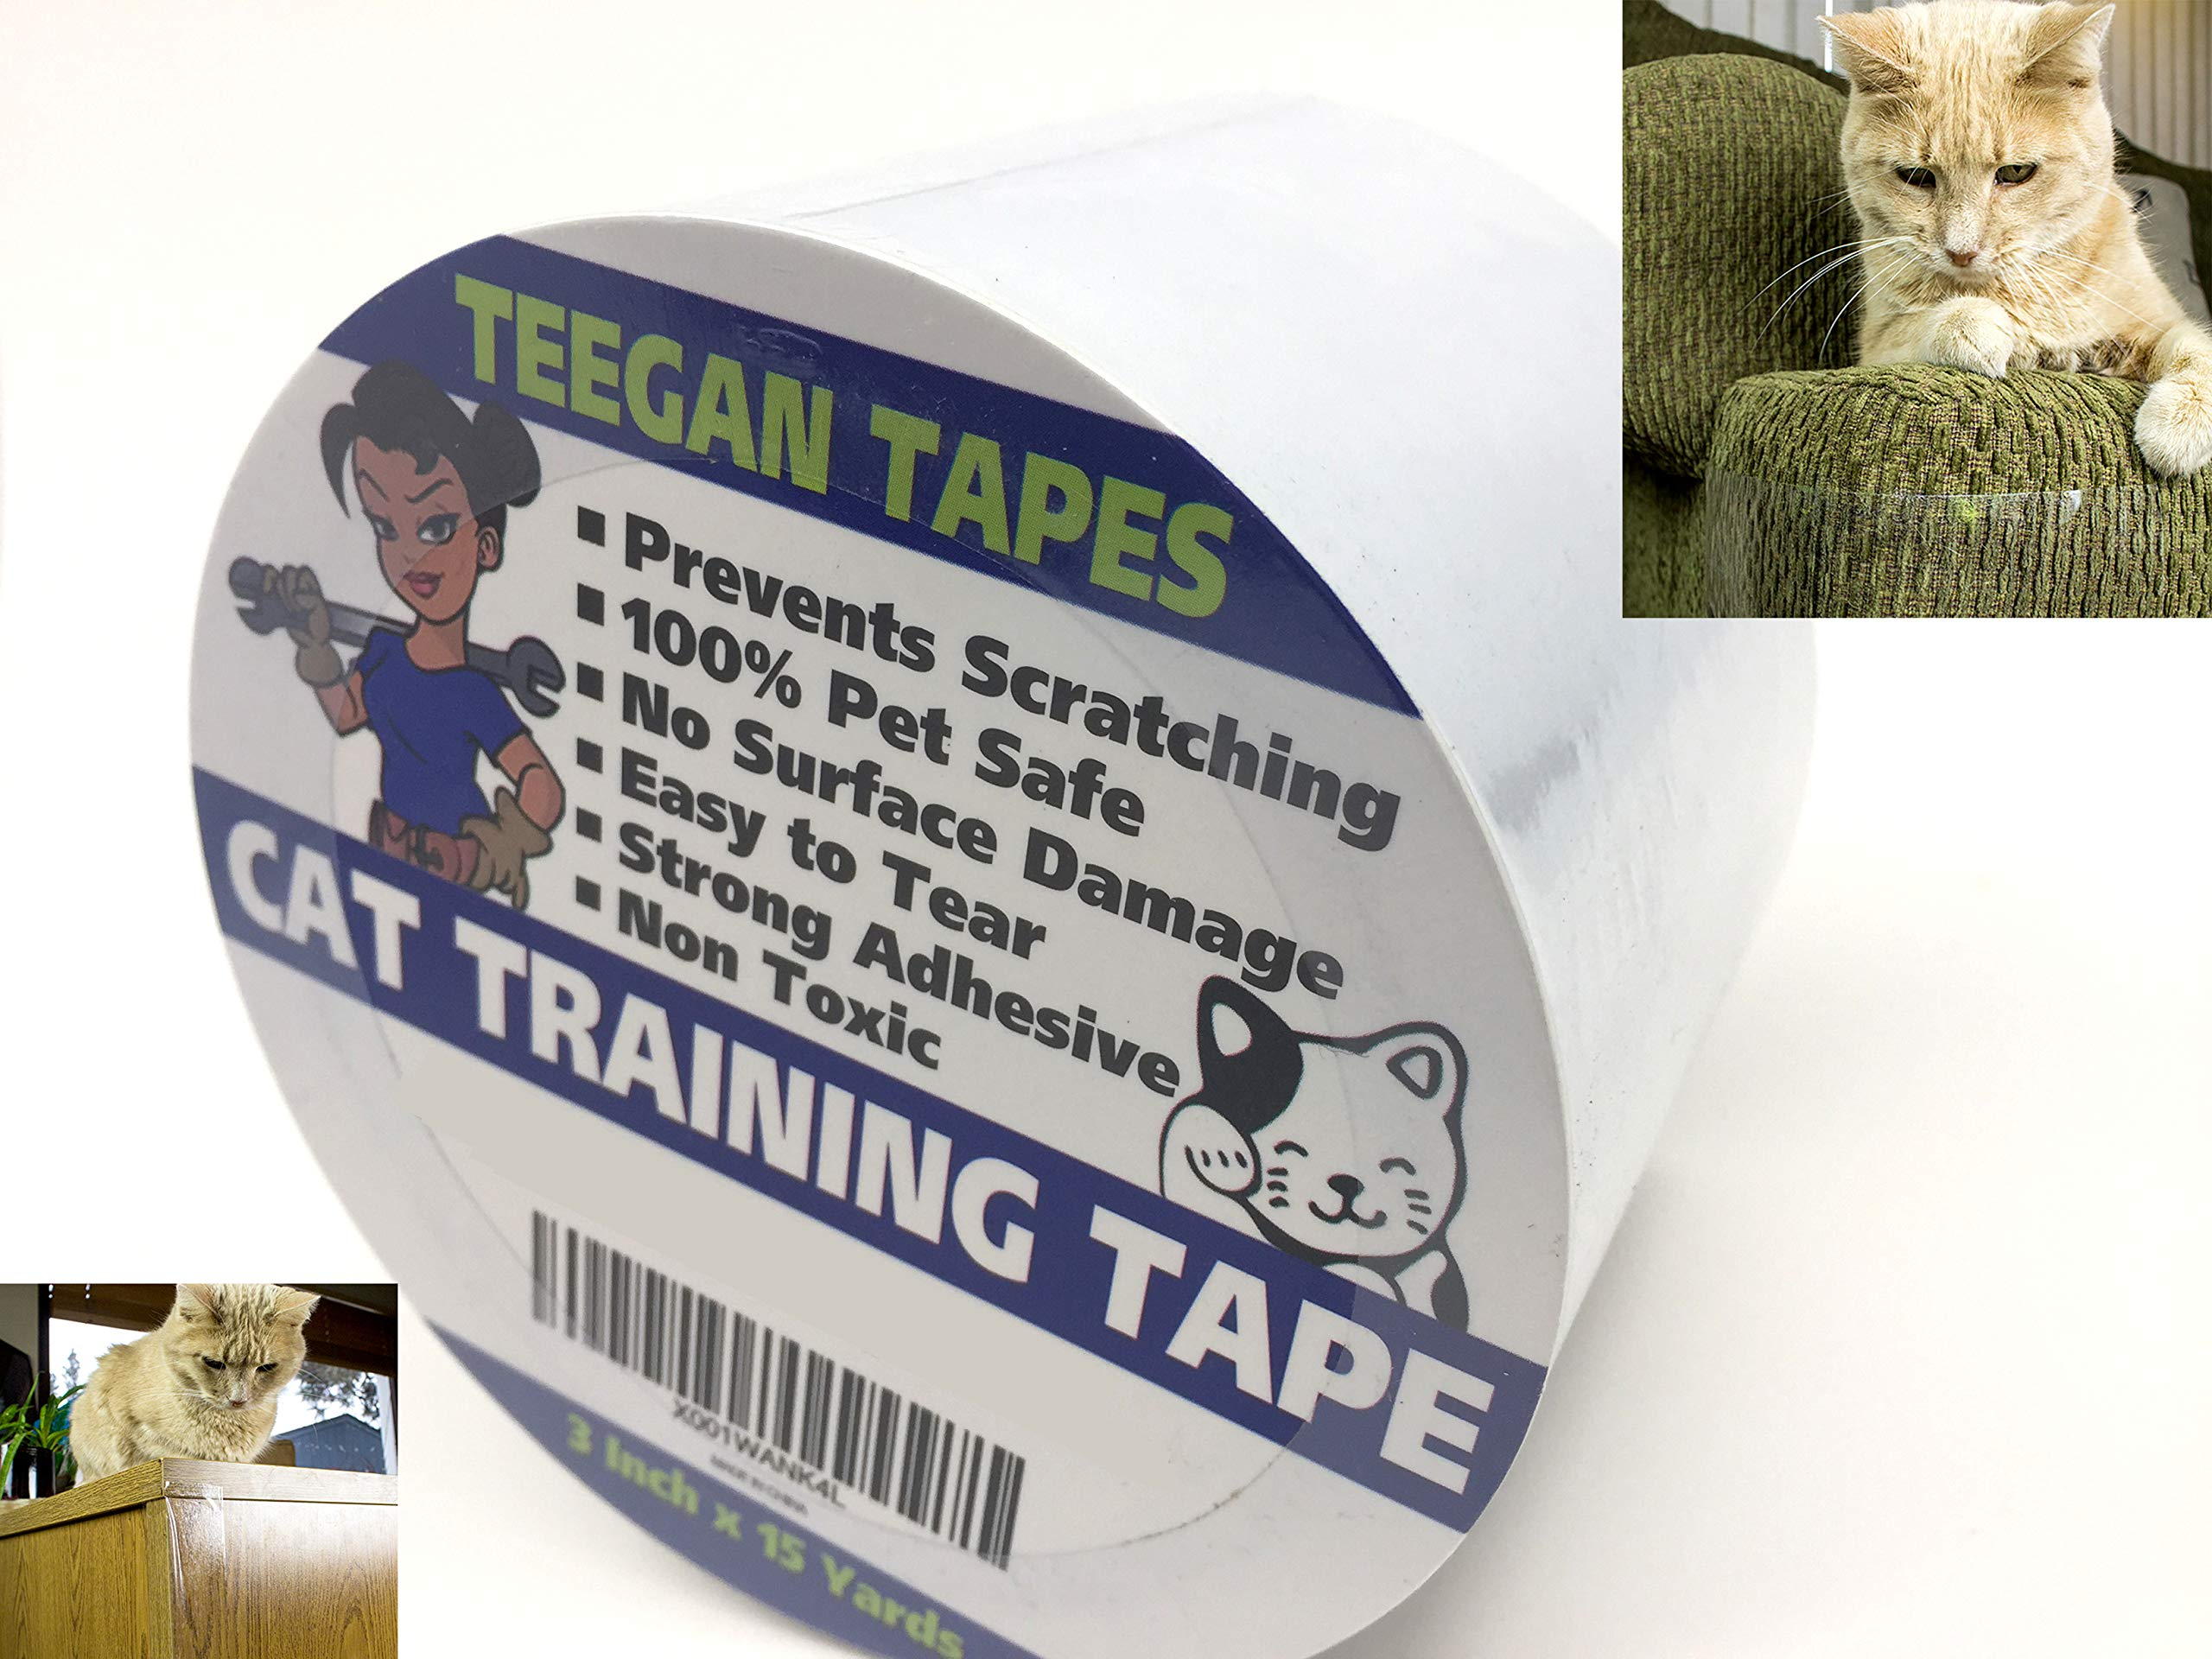 Cat Training Tape - Prevent Scratching | Clear Double Sided Tape | Furniture Protector & Scratch Deterrent | Sticky Double Sided Pet Repellant | Safe for Wood Furniture, Leather Sofas & Couches by Gaffer Power